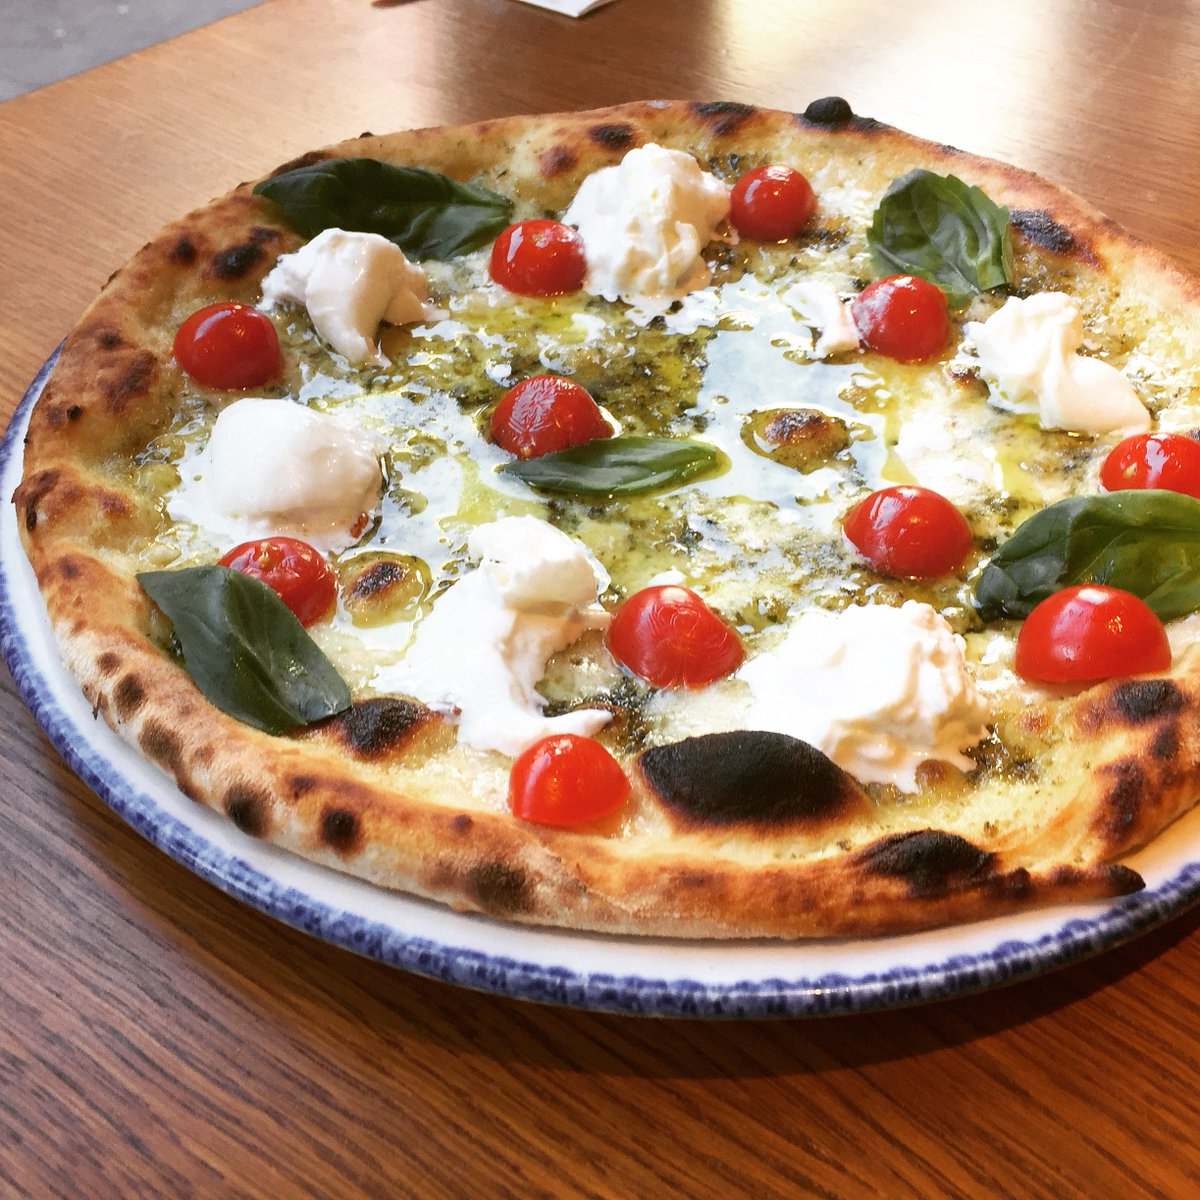 Amici Miei 2 Go London's Best Pizza with Deliveroo